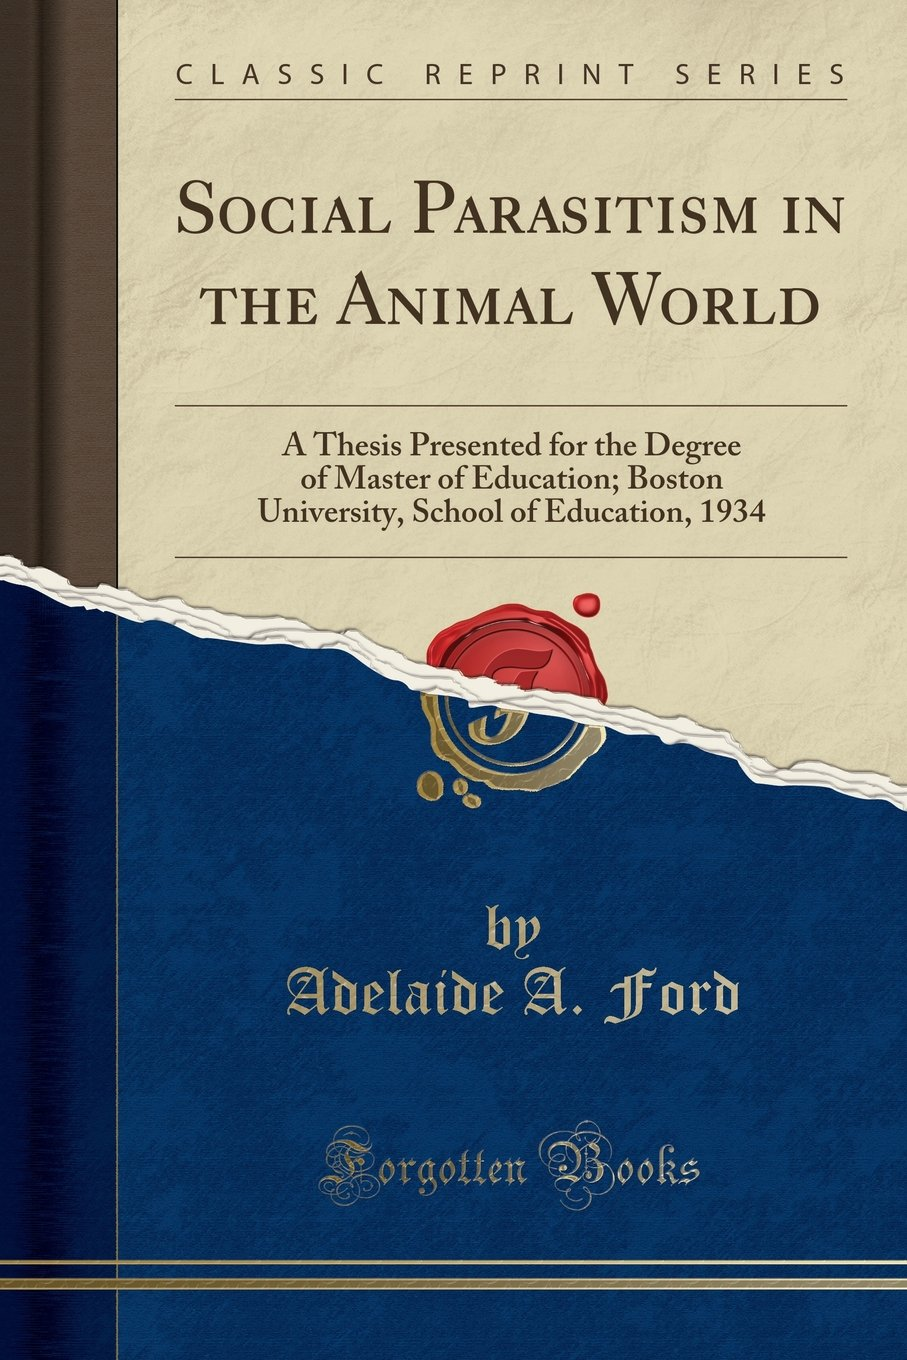 Download Social Parasitism in the Animal World: A Thesis Presented for the Degree of Master of Education; Boston University, School of Education, 1934 (Classic Reprint) pdf